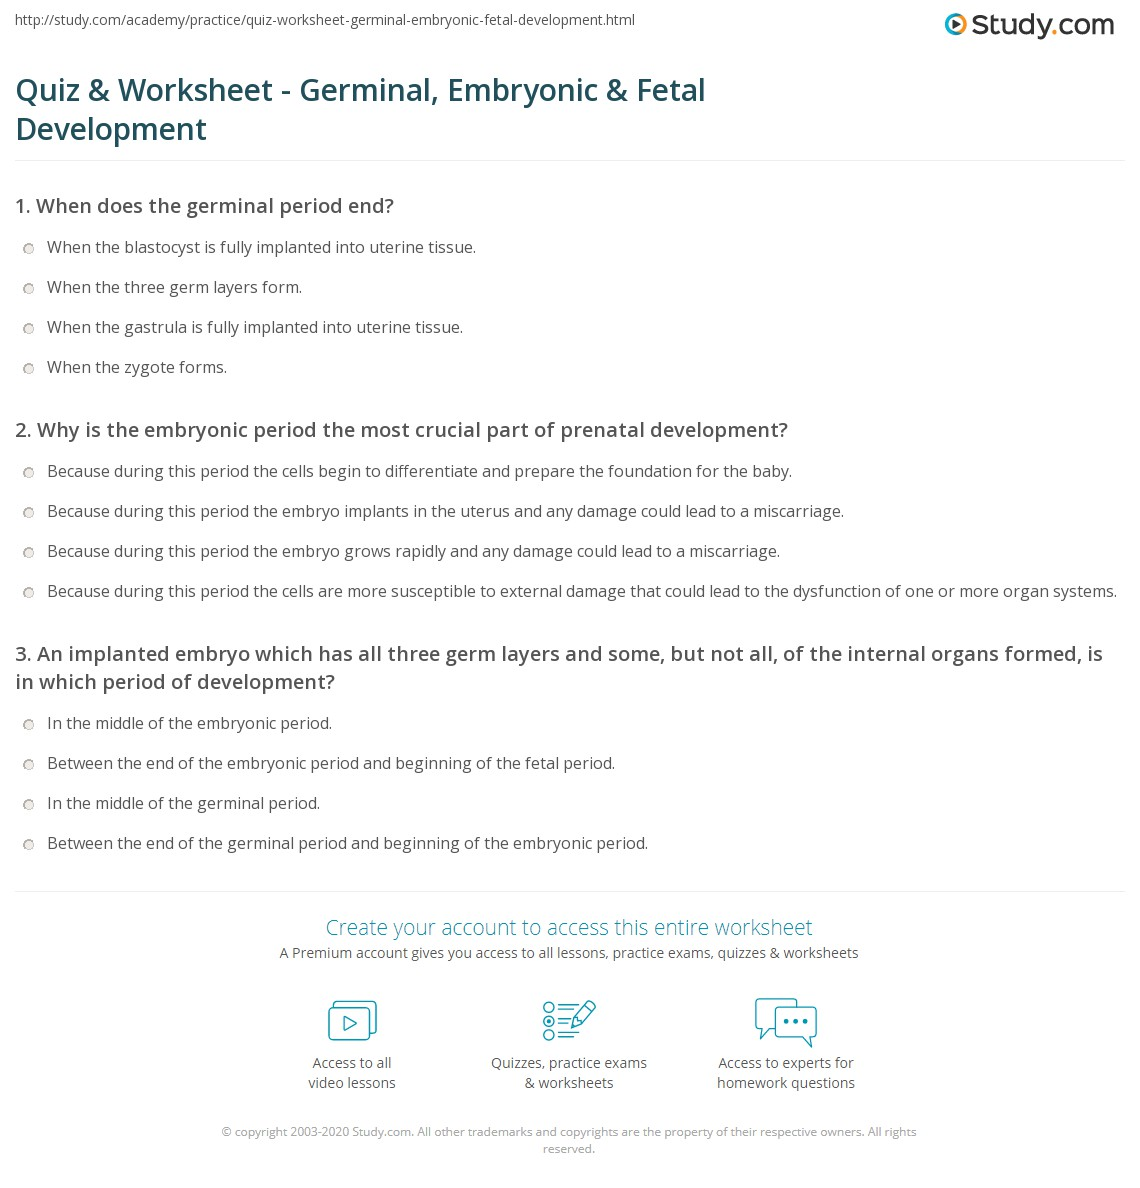 quiz worksheet germinal embryonic fetal development. Black Bedroom Furniture Sets. Home Design Ideas